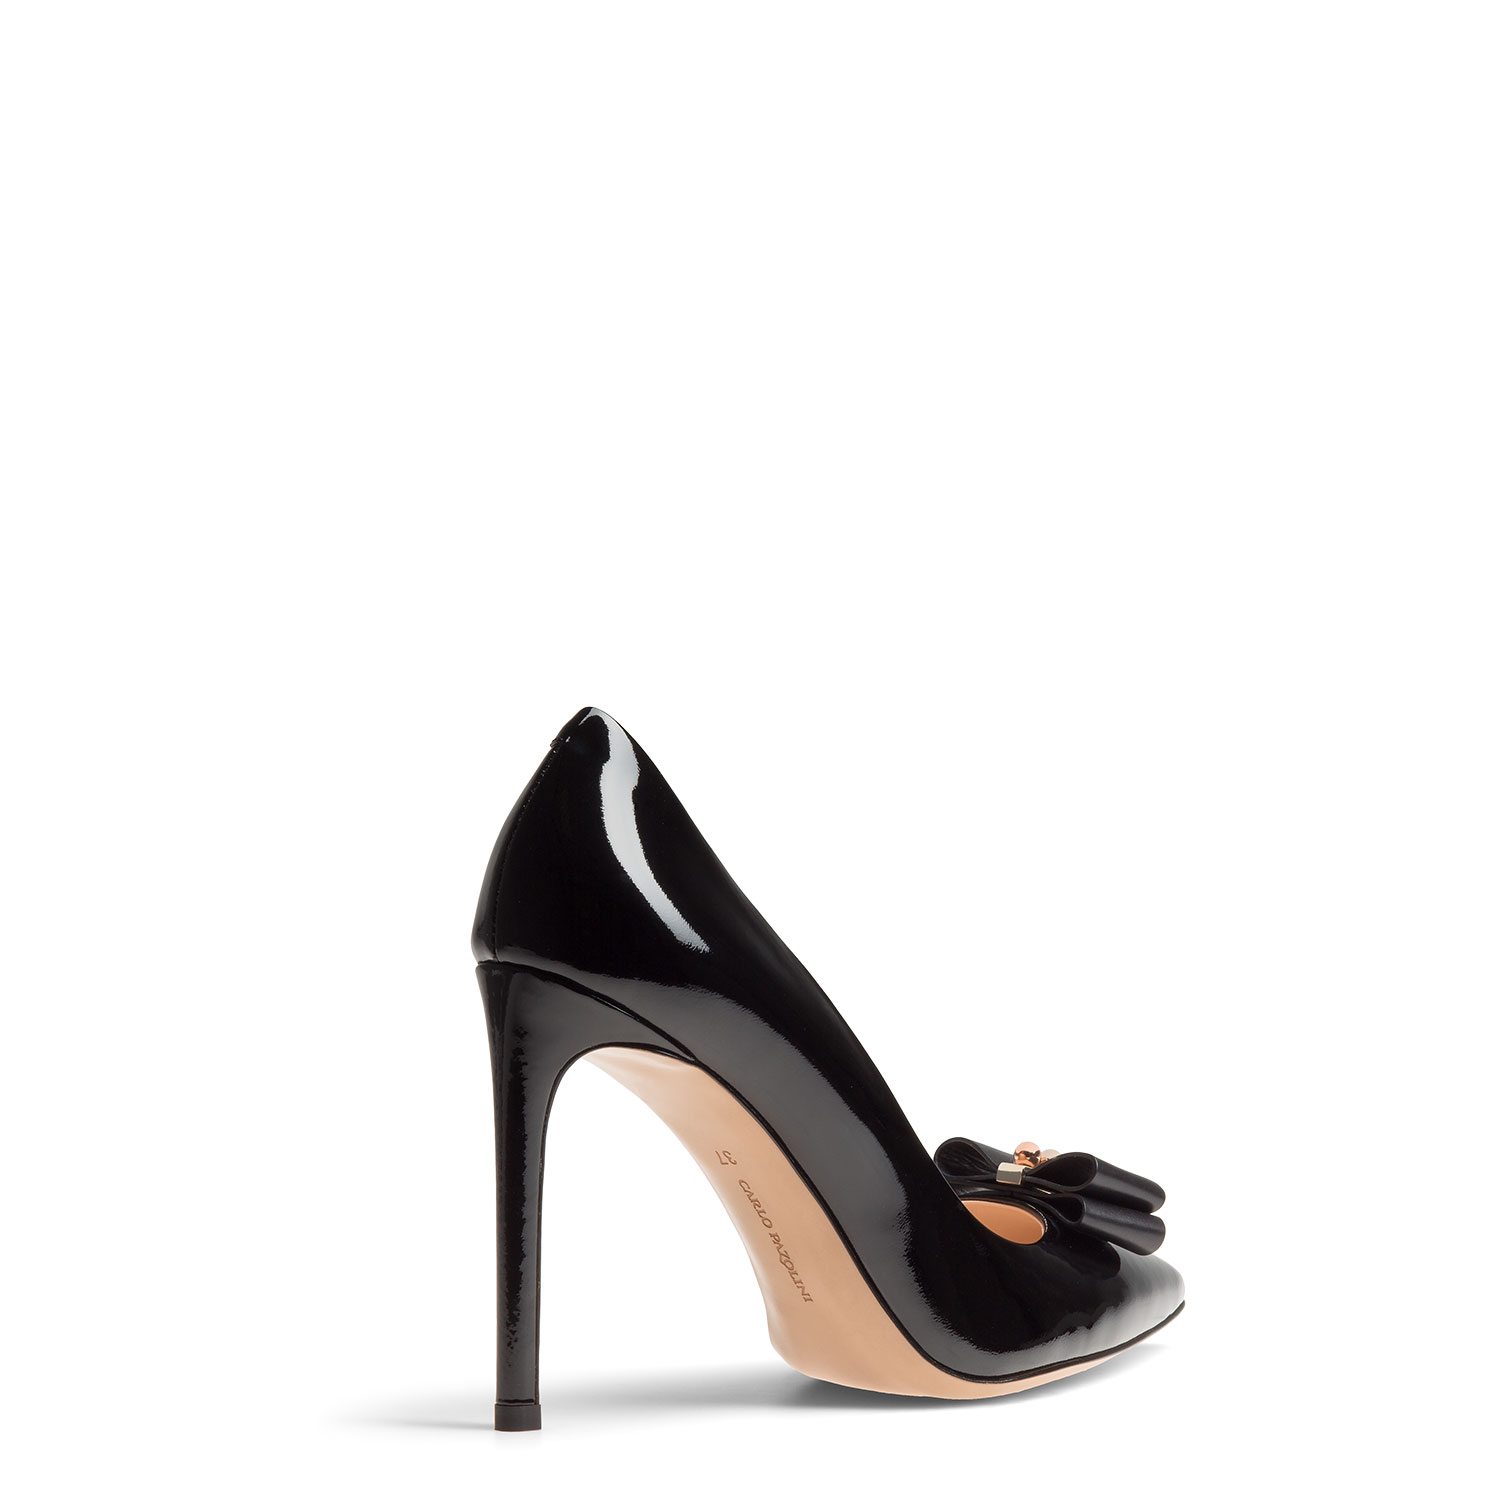 Women's shoes CARLO PAZOLINI FL-ALV4-1